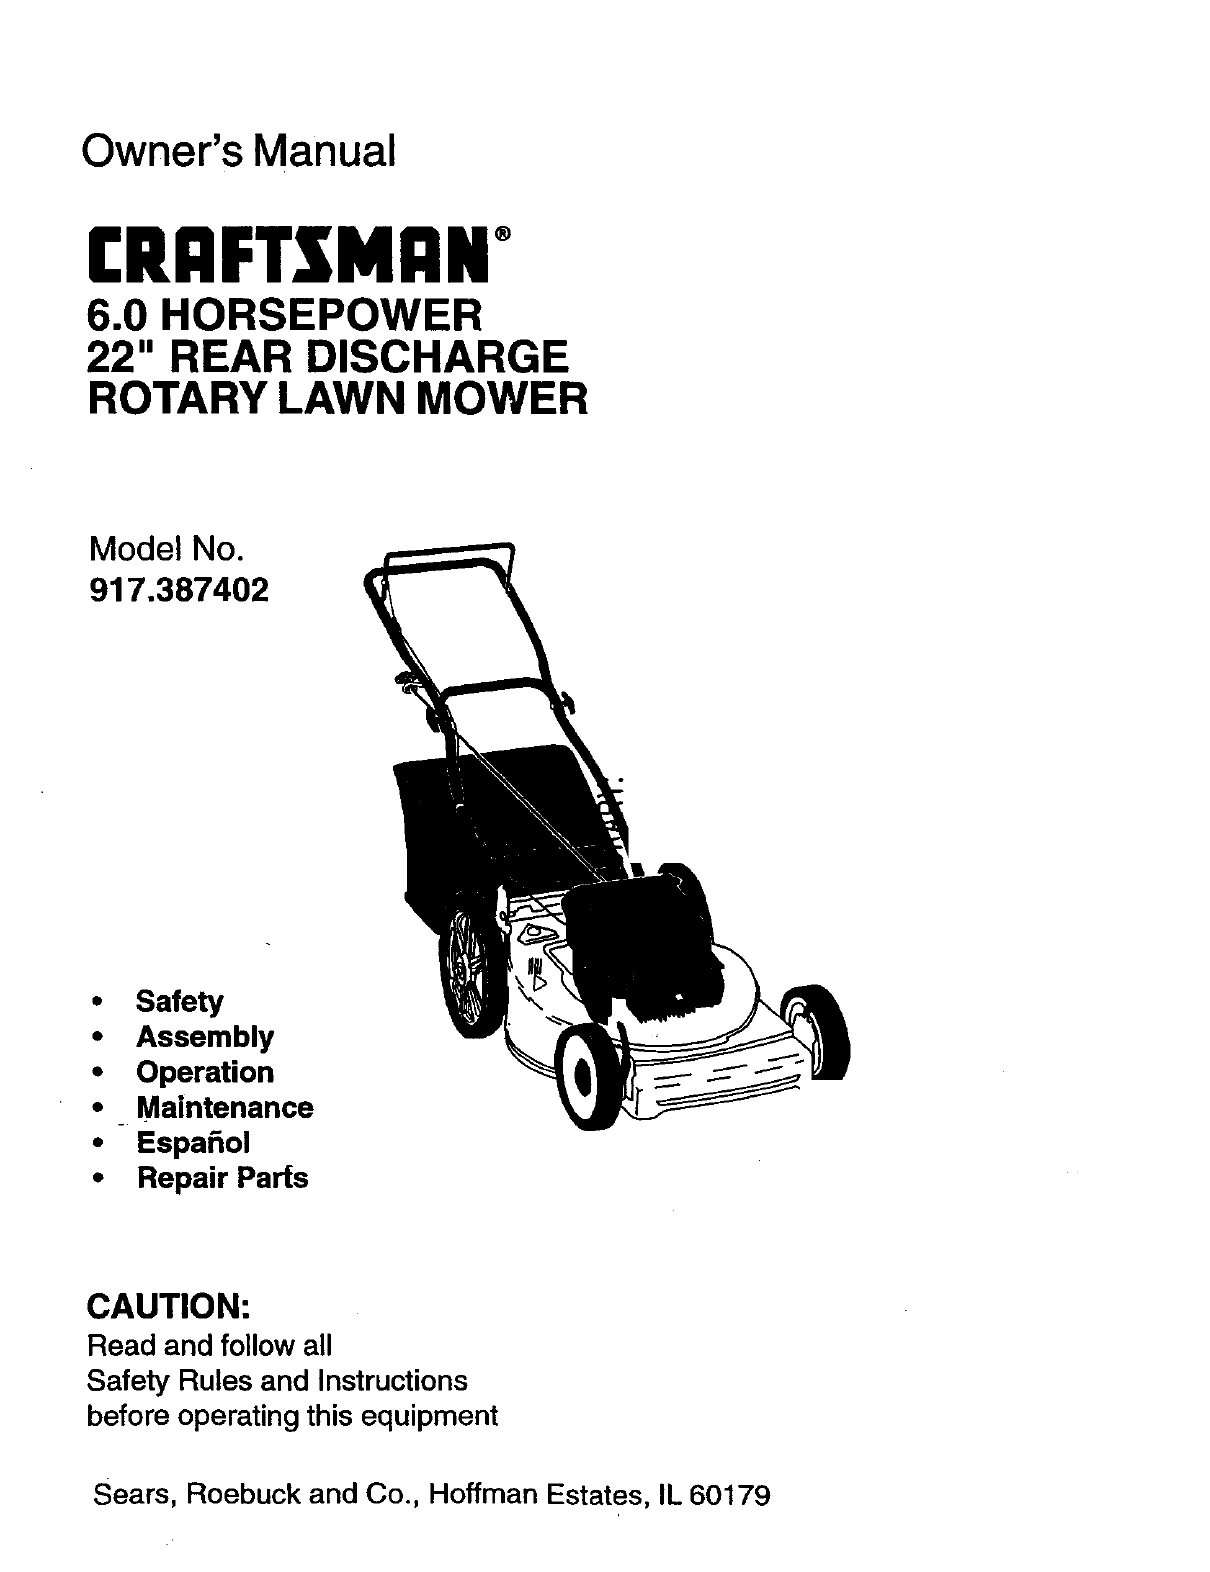 craftsman lawn mower 917 387402 user guide manualsonline com rh tv manualsonline com Craftsman Instruction Manual Craftsman Instruction Manual